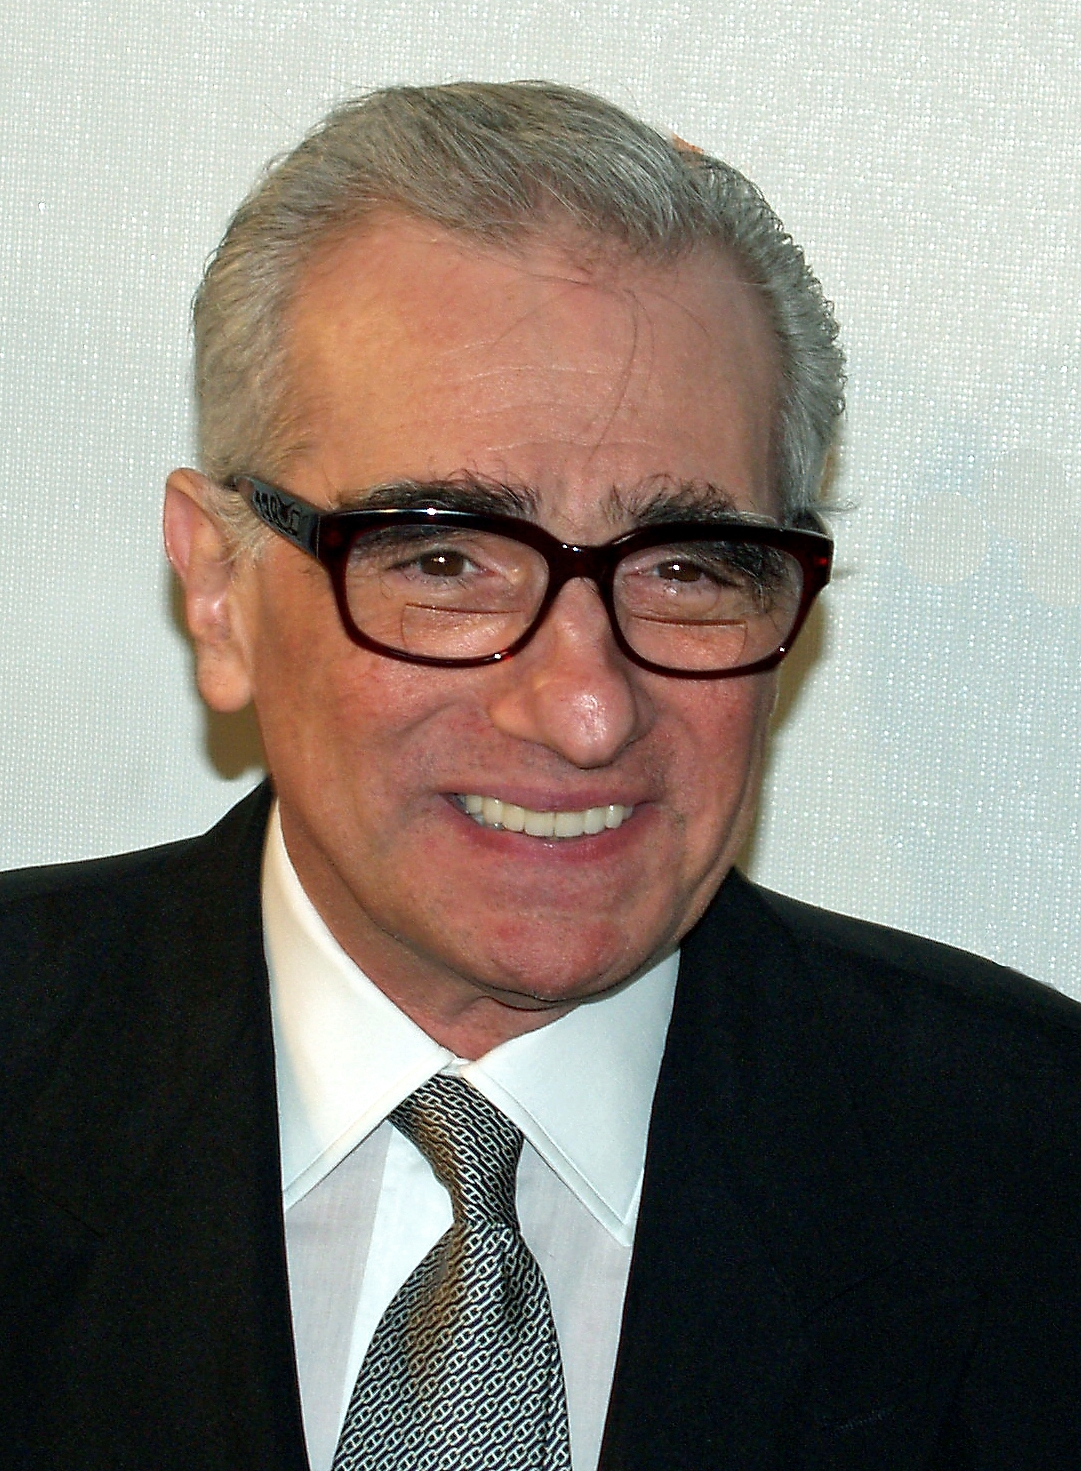 an analysis of new york city in martin scorseses essay Martin charles scorsese was born on november 17, 1942 in queens, new york  city, to catherine scorsese (née cappa) and charles scorsese, who both    interviews and essays on scorsese's work simply titled scorsese by ebert   but i think we see the world the same way, meaning he feels comfortable with the .